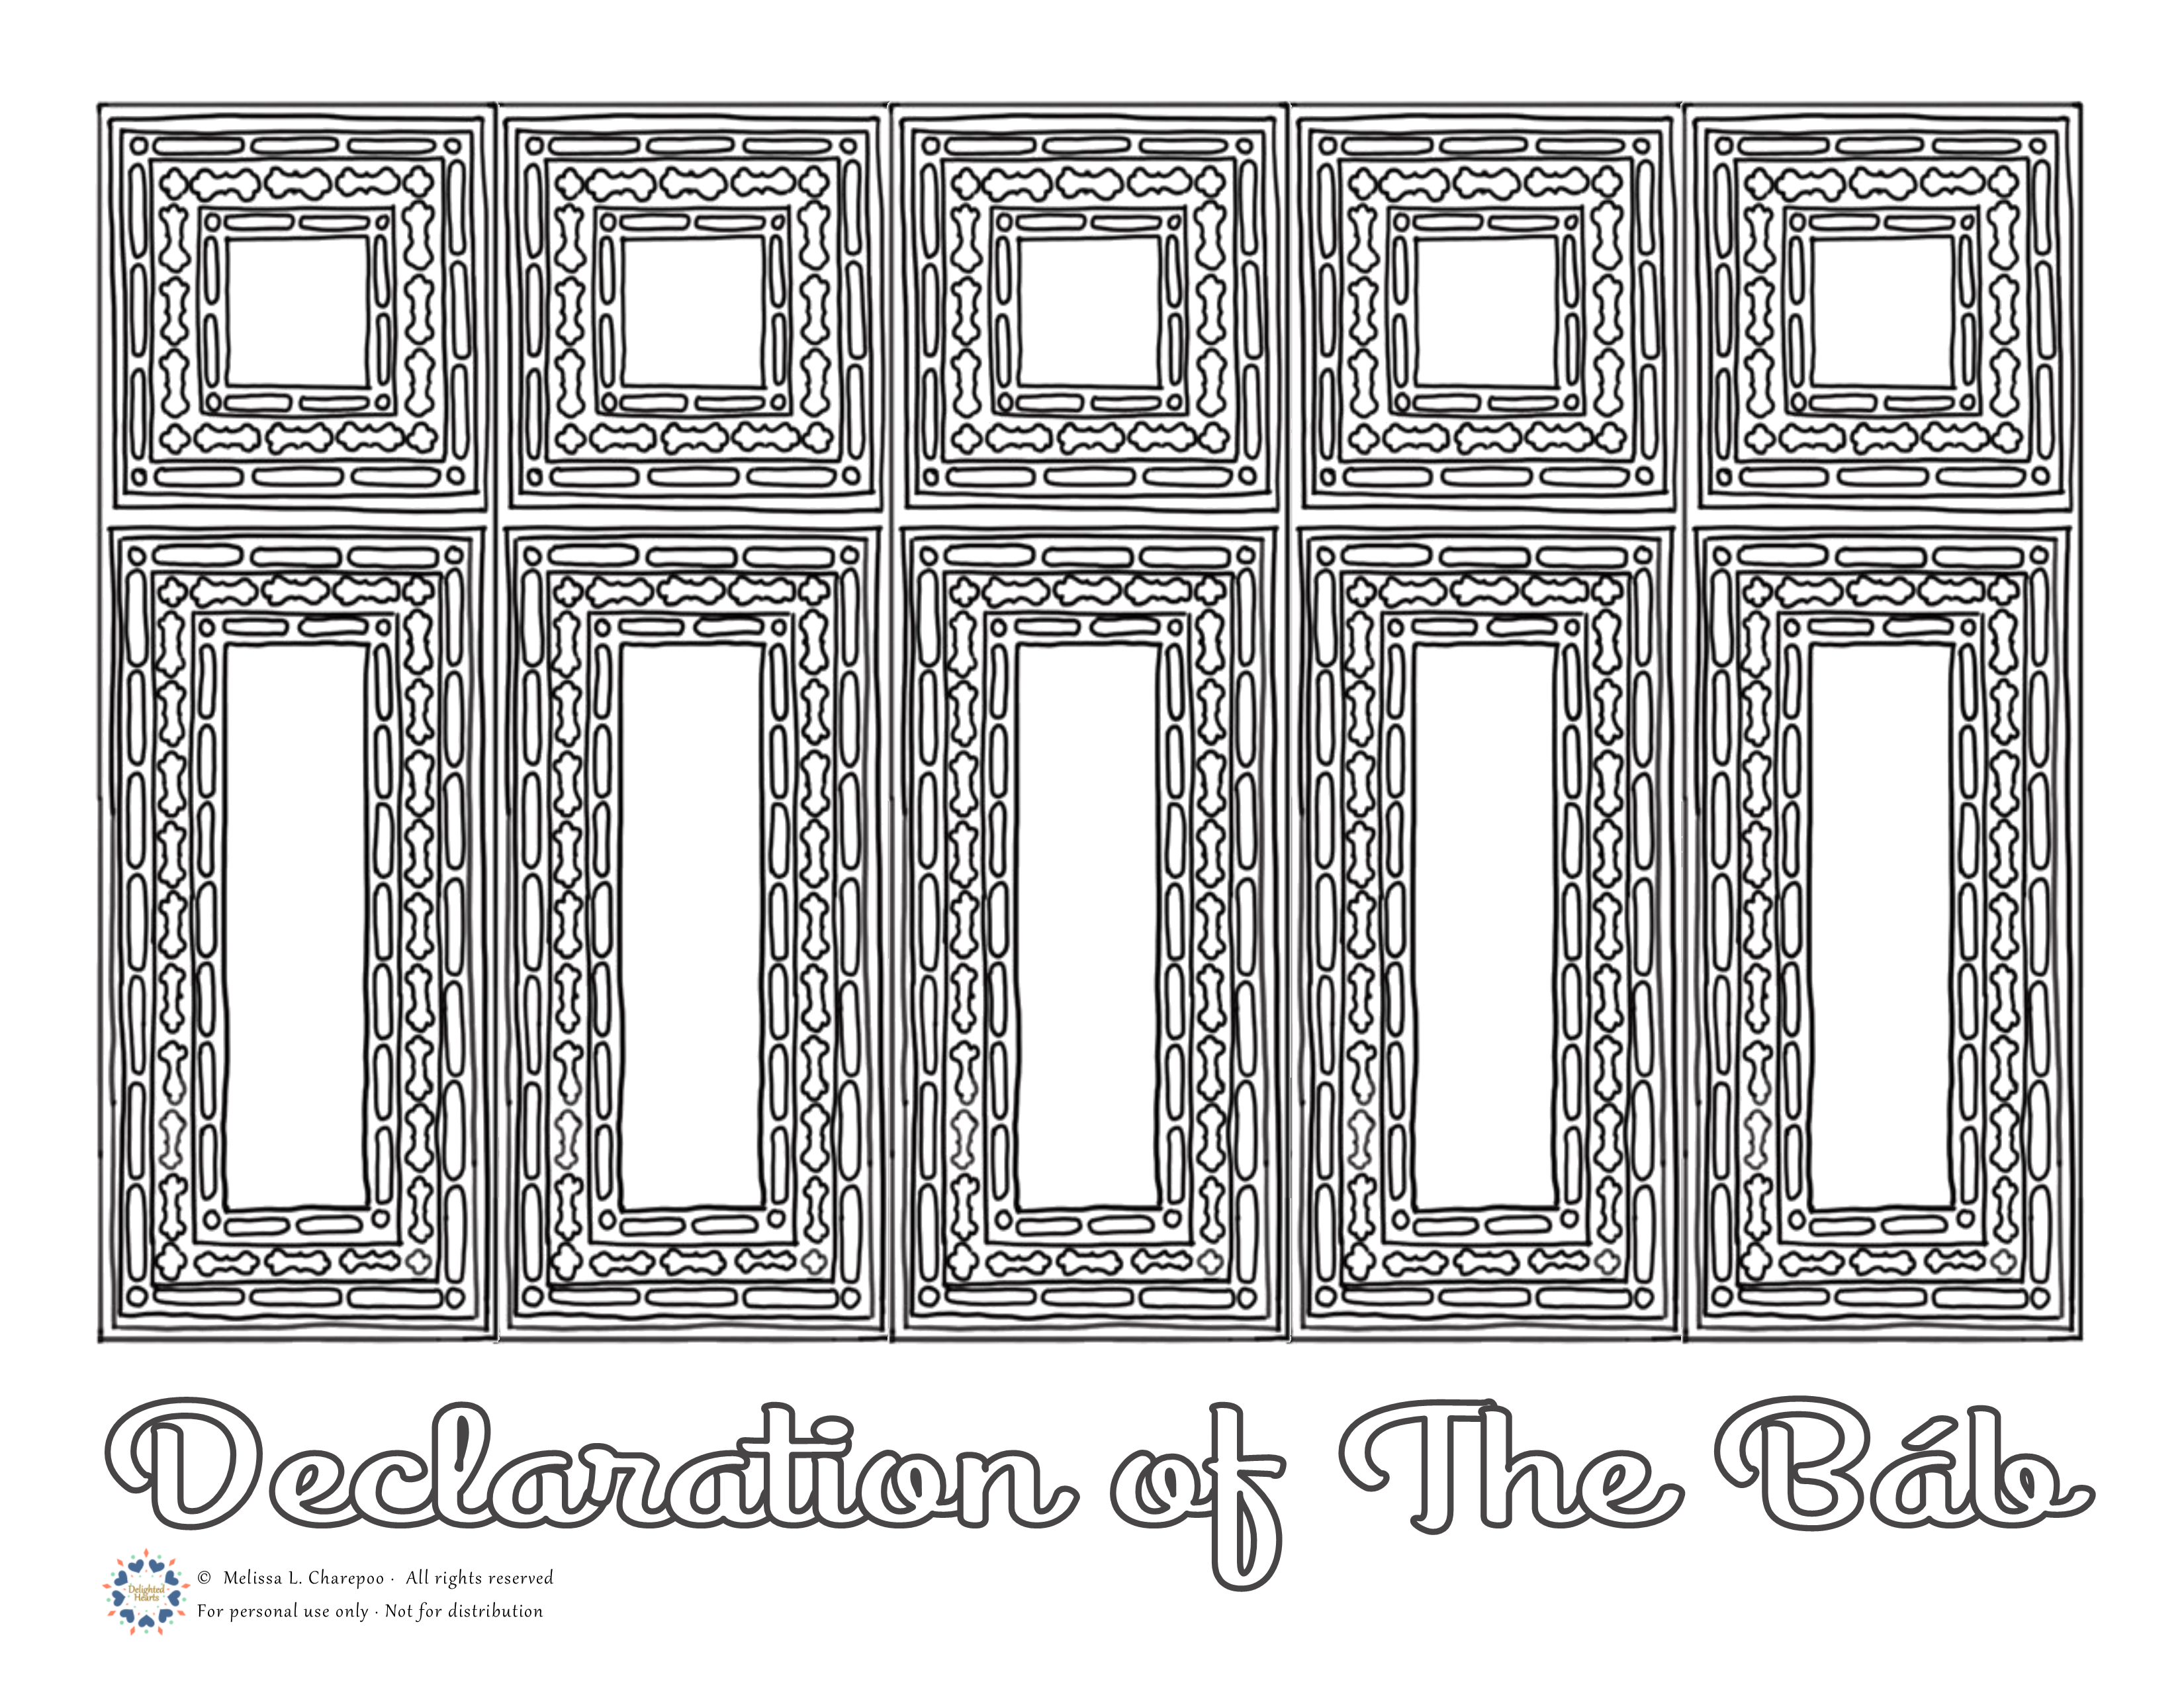 Gift Coloring Page Windows of the House of The B b in